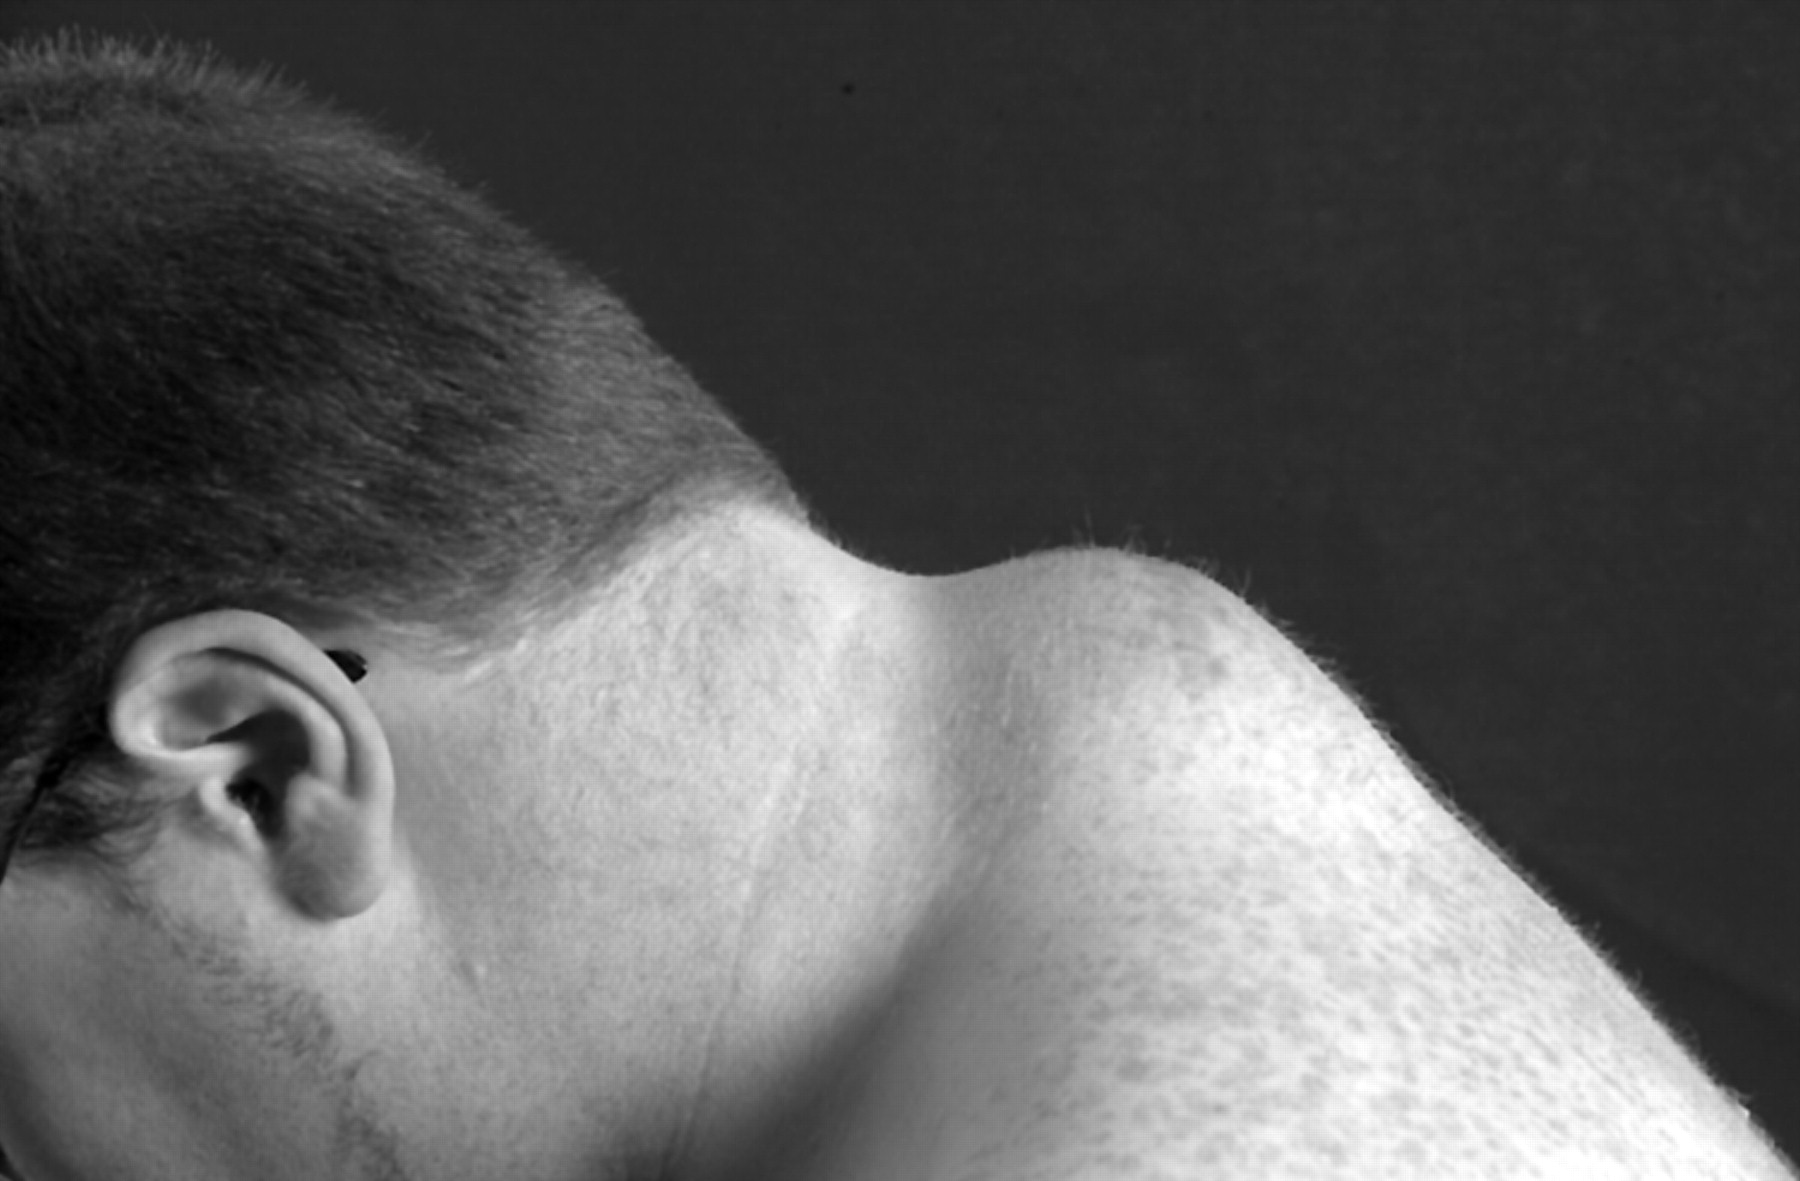 Soft tissue neck lumps in rugby union players | British Journal of